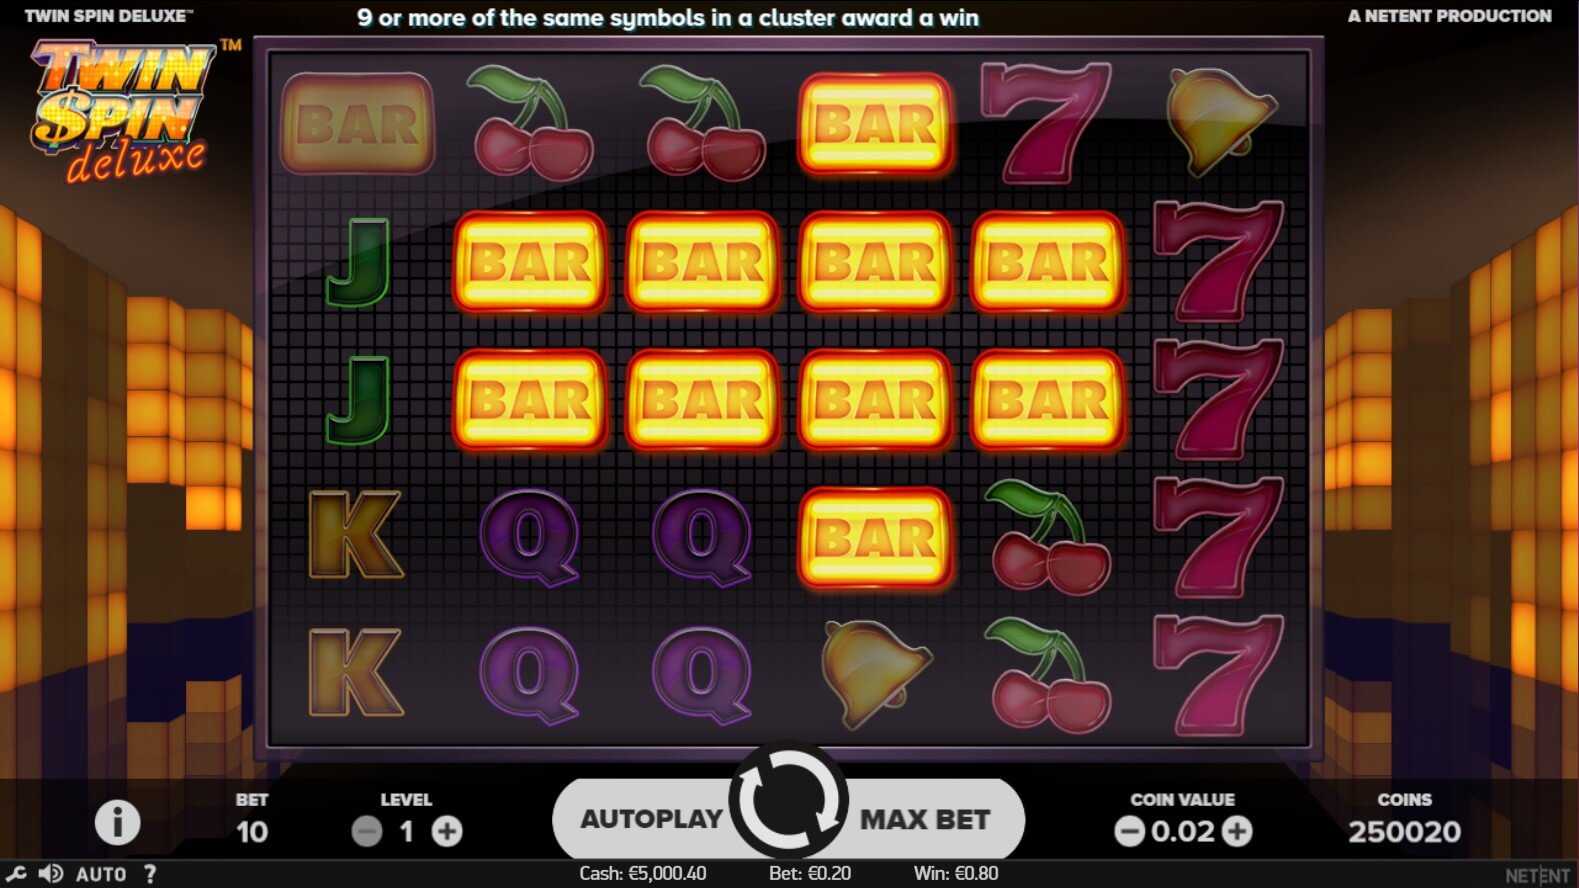 Twin Spin Deluxe Slots Online